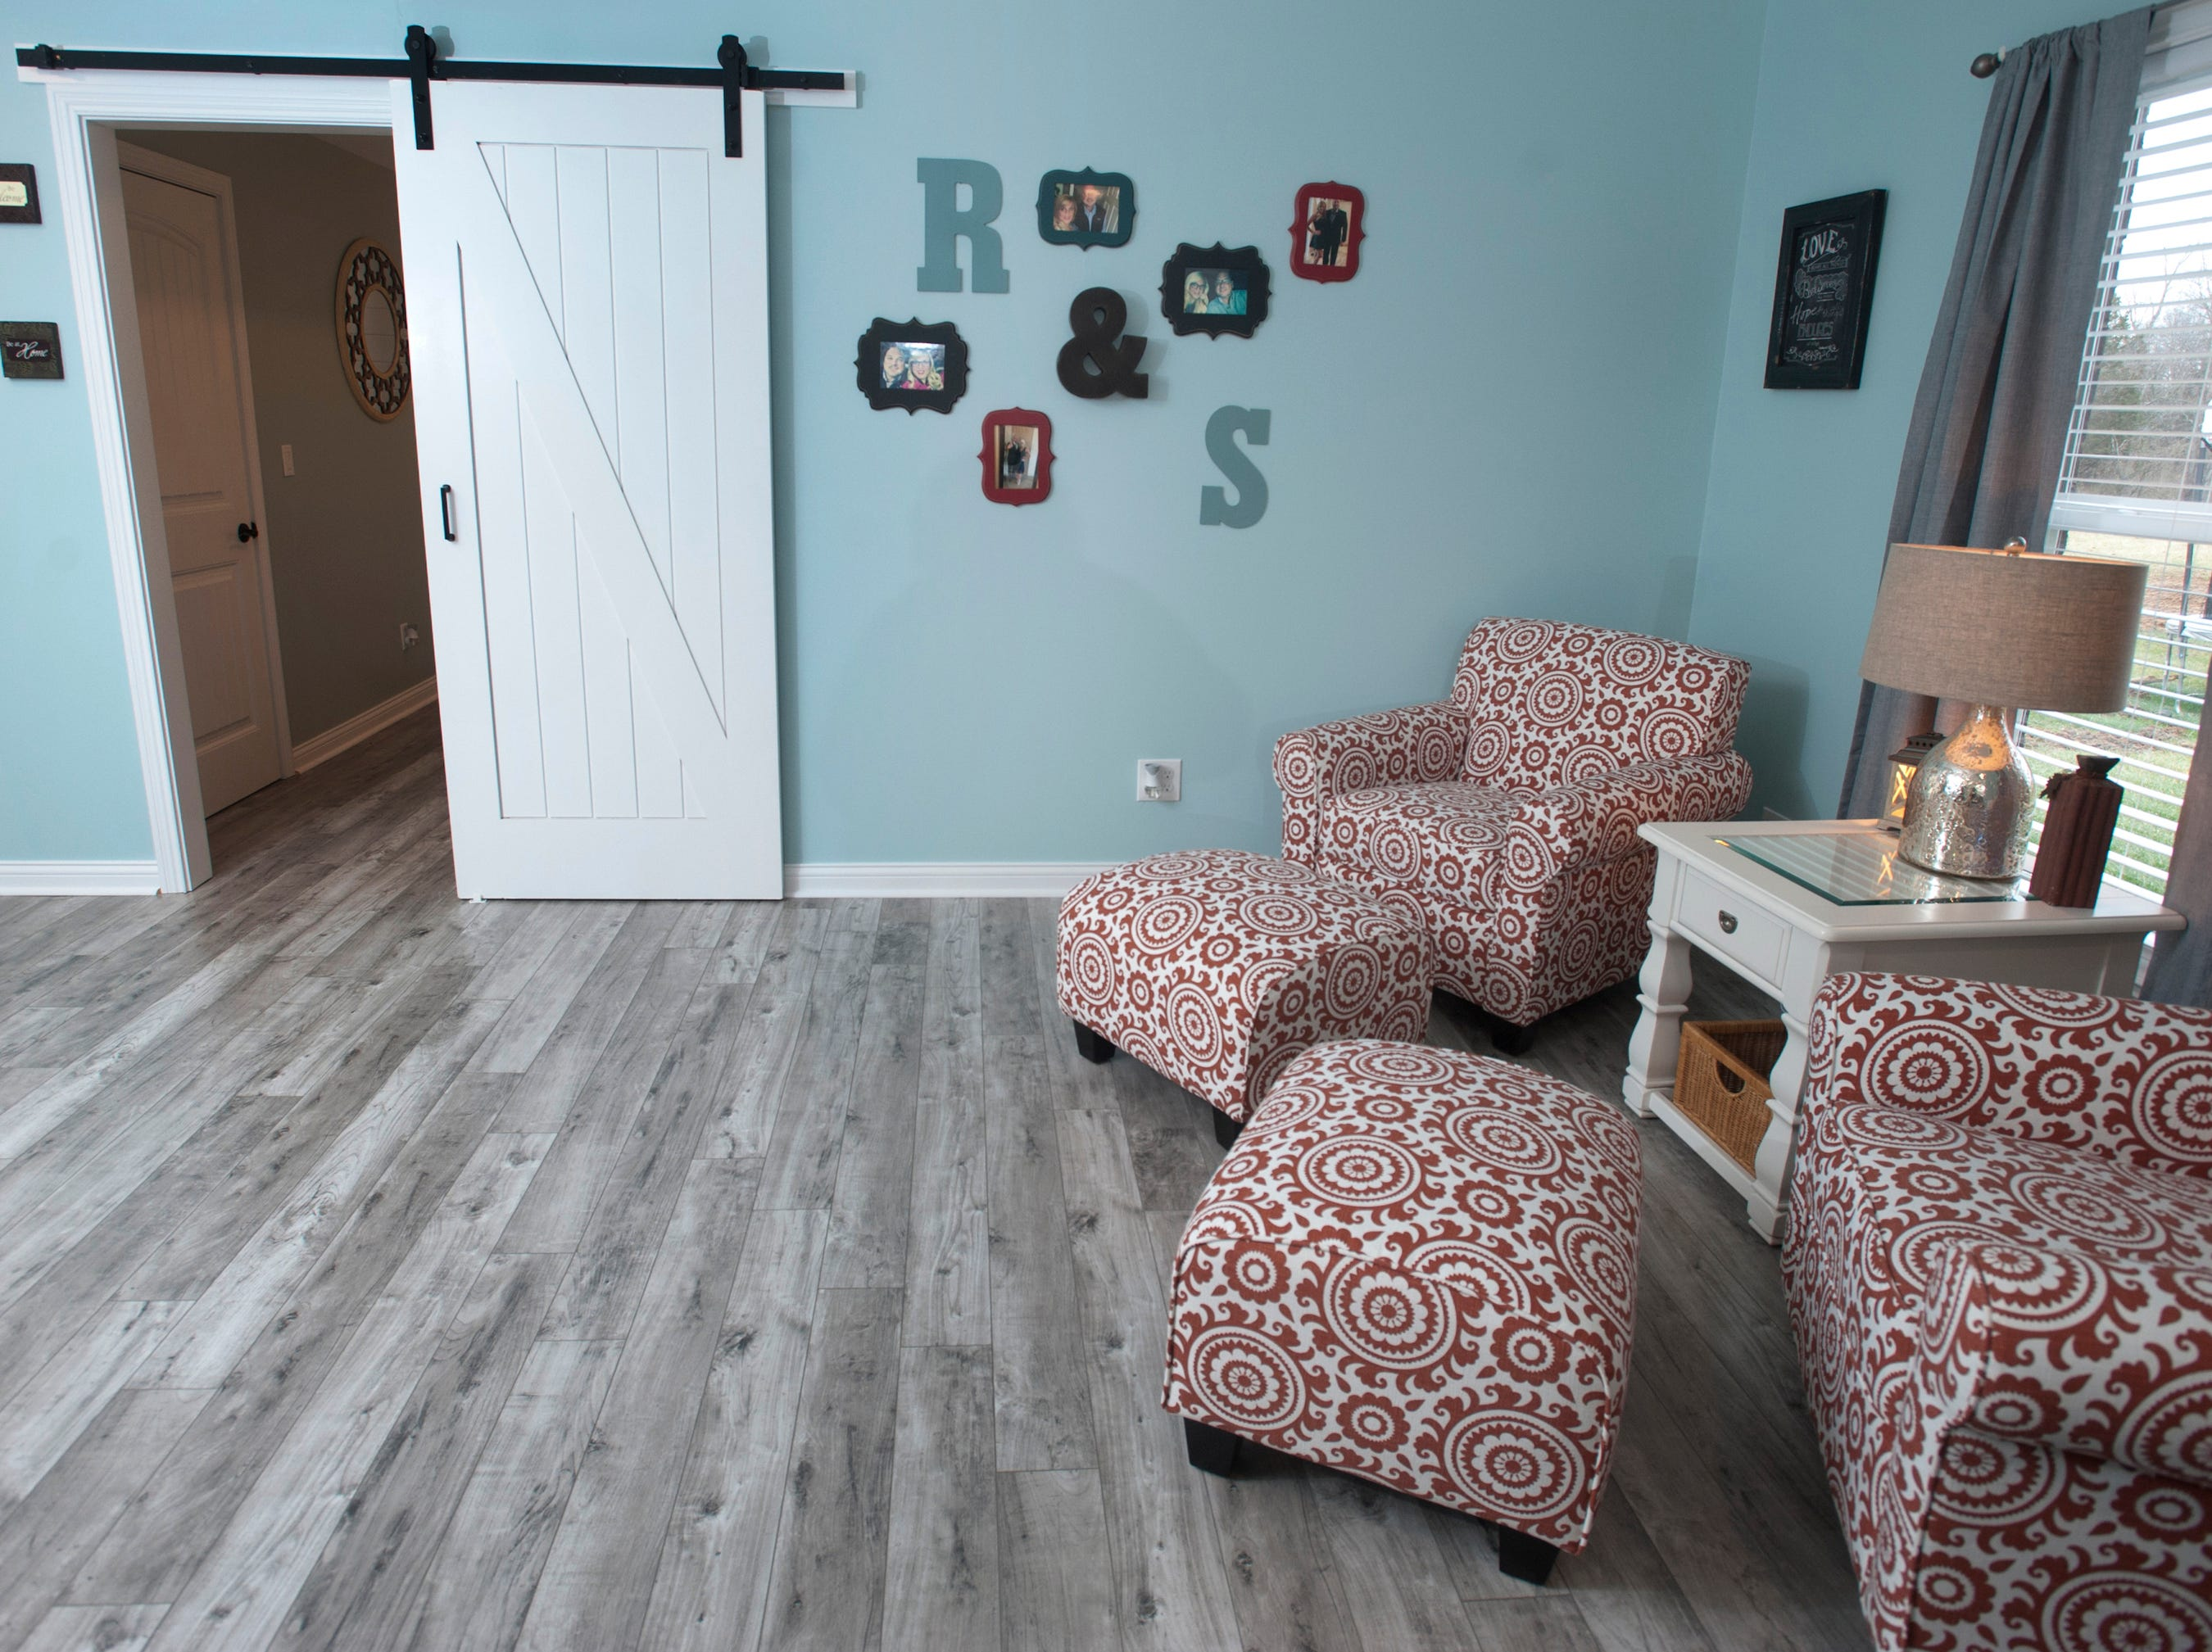 The basement family room. At top left, barn doors are used at the entrance of the Bell's daughter's basement bedroom.